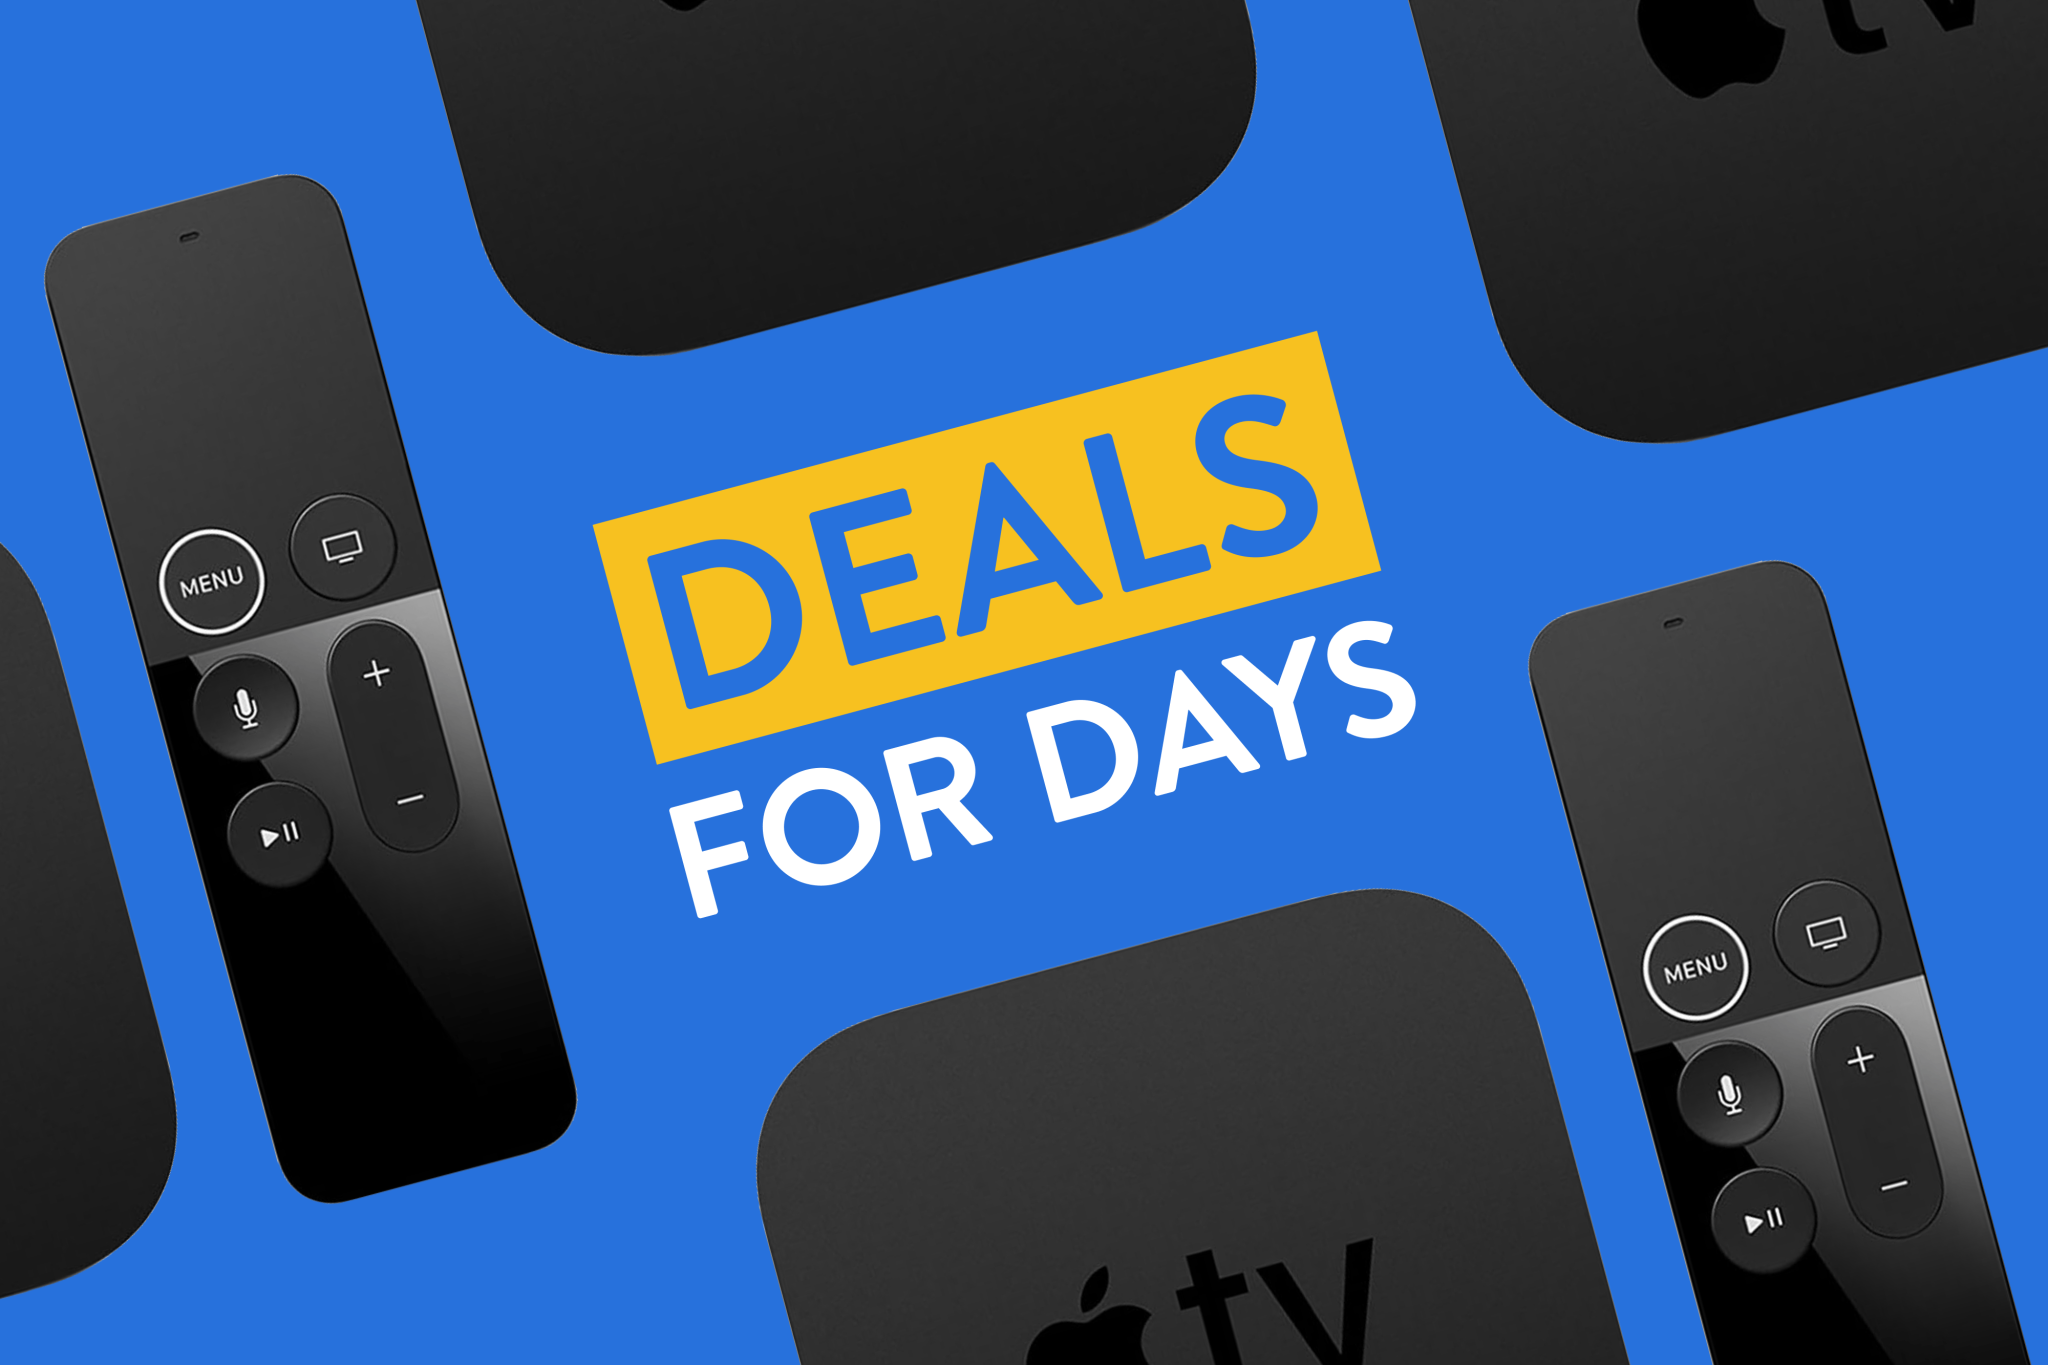 The best Apple TV deal right now is at Walmart for Prime Day